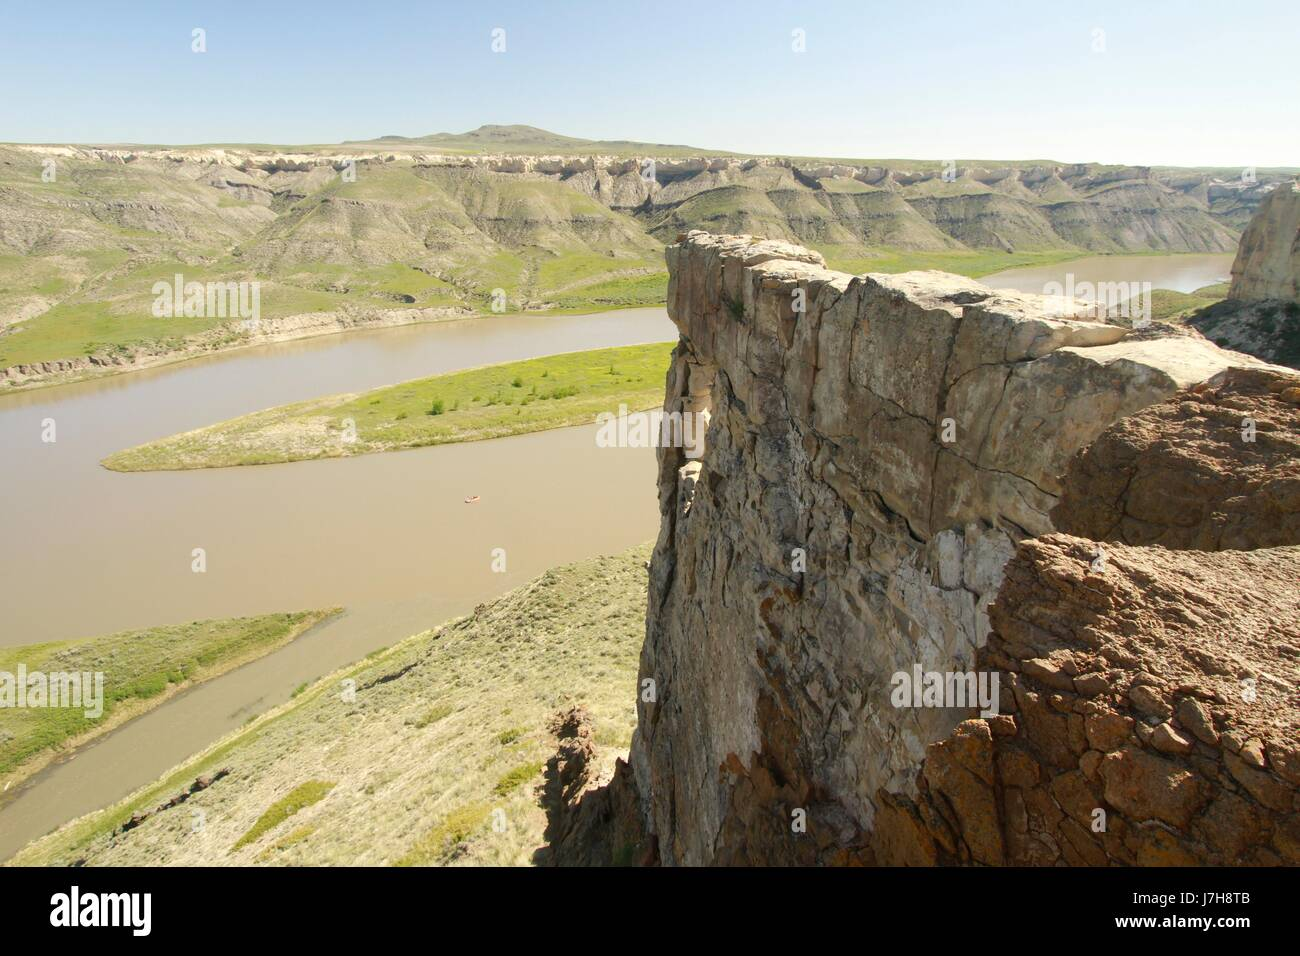 A peek at Hole in the Wall, Missouri River Breaks National Monument, Montana - Stock Image